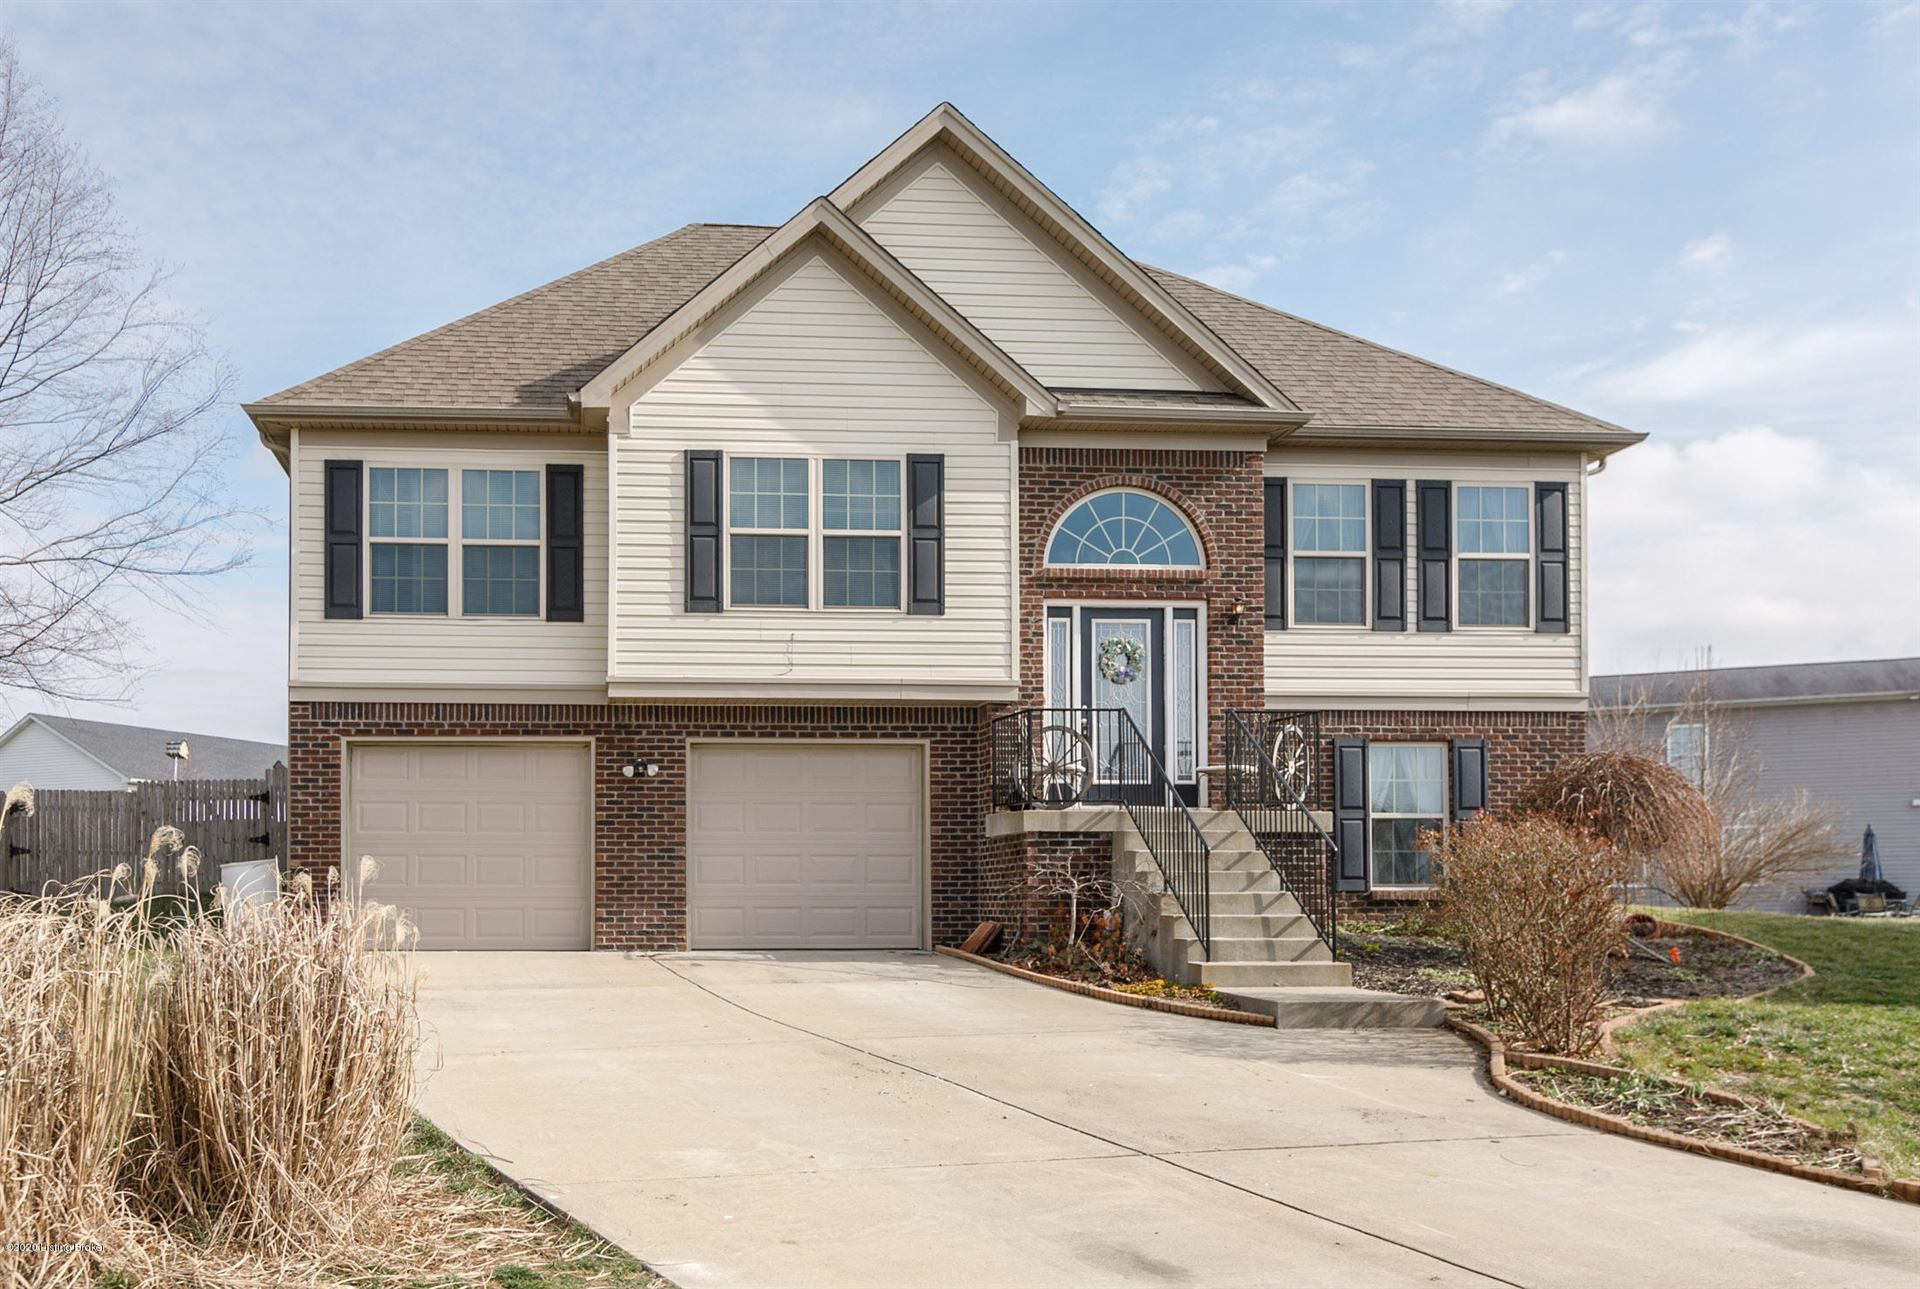 776 Friesian Ct, Shelbyville, KY 40065 - #: 1551813